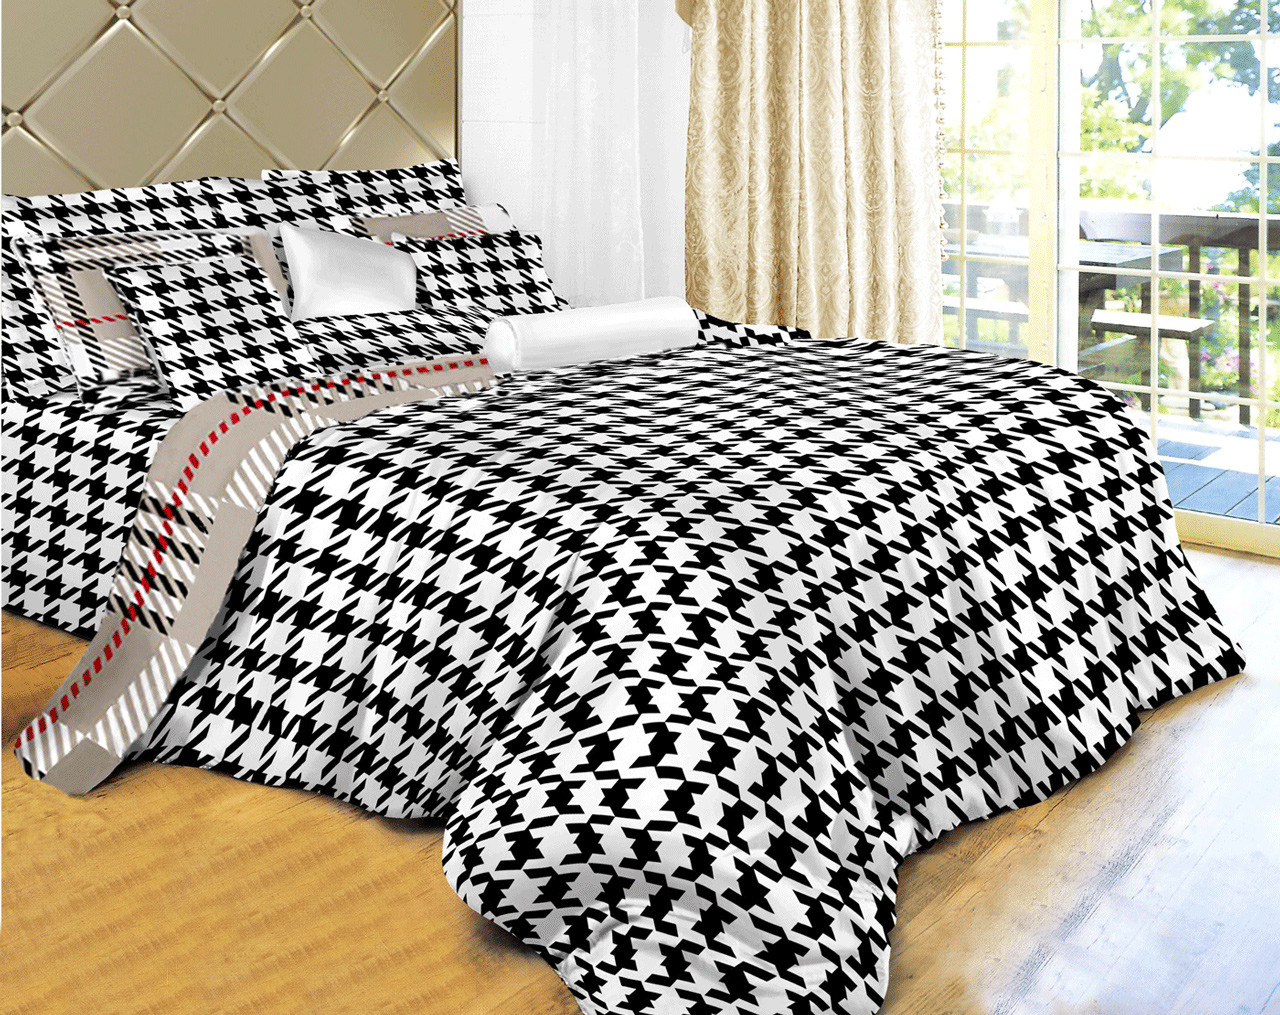 DM498K Dolce Mela Houndstooth Check King Size